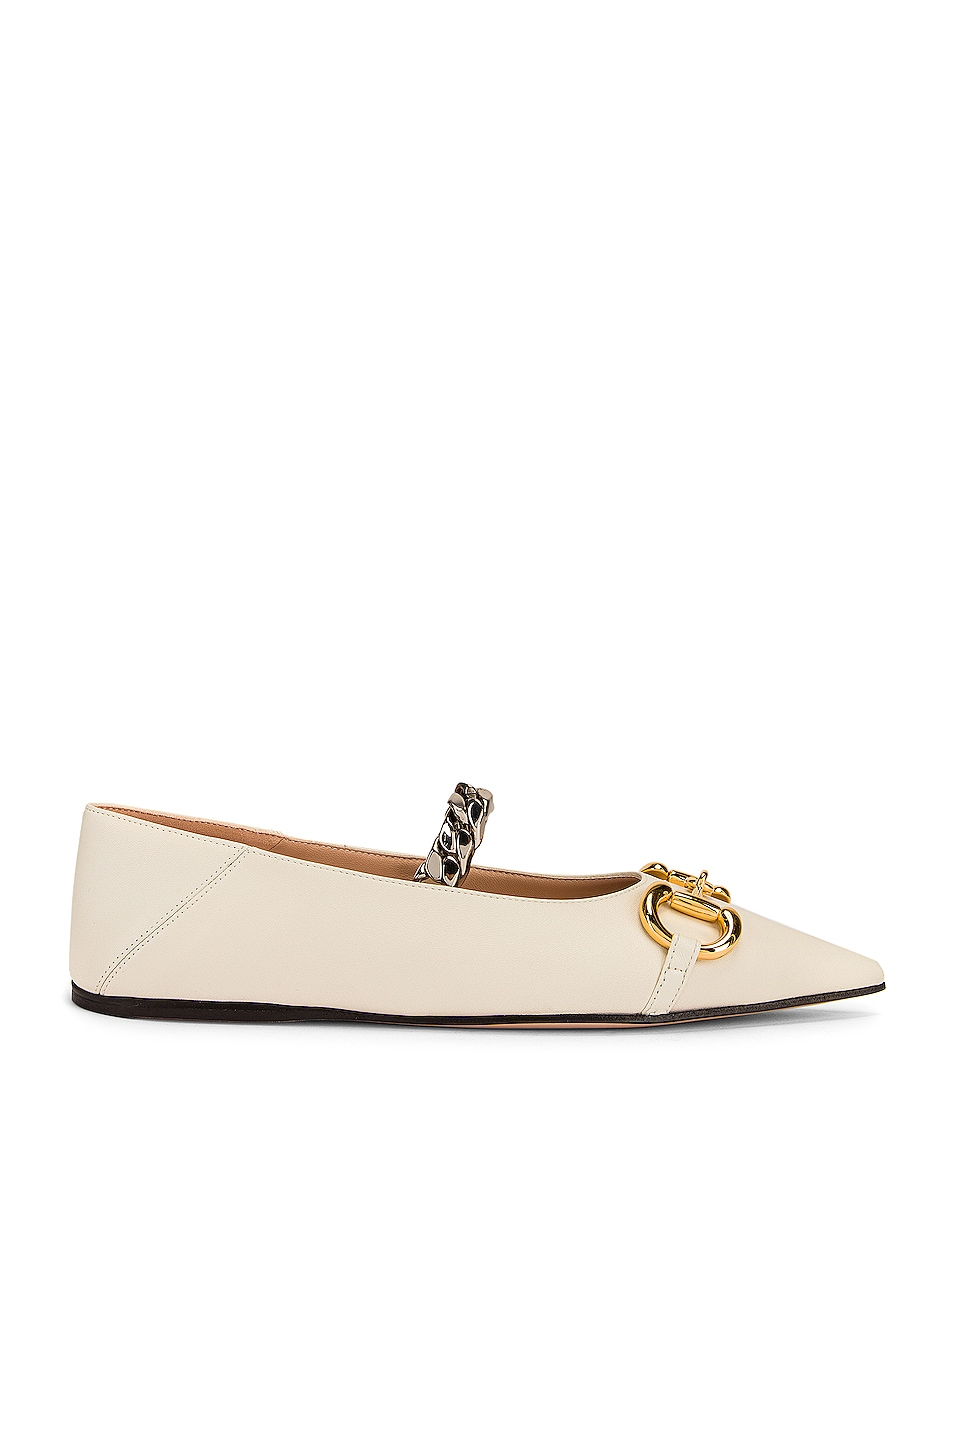 Image 1 of Gucci Deva Ballet Flats in Dusty White